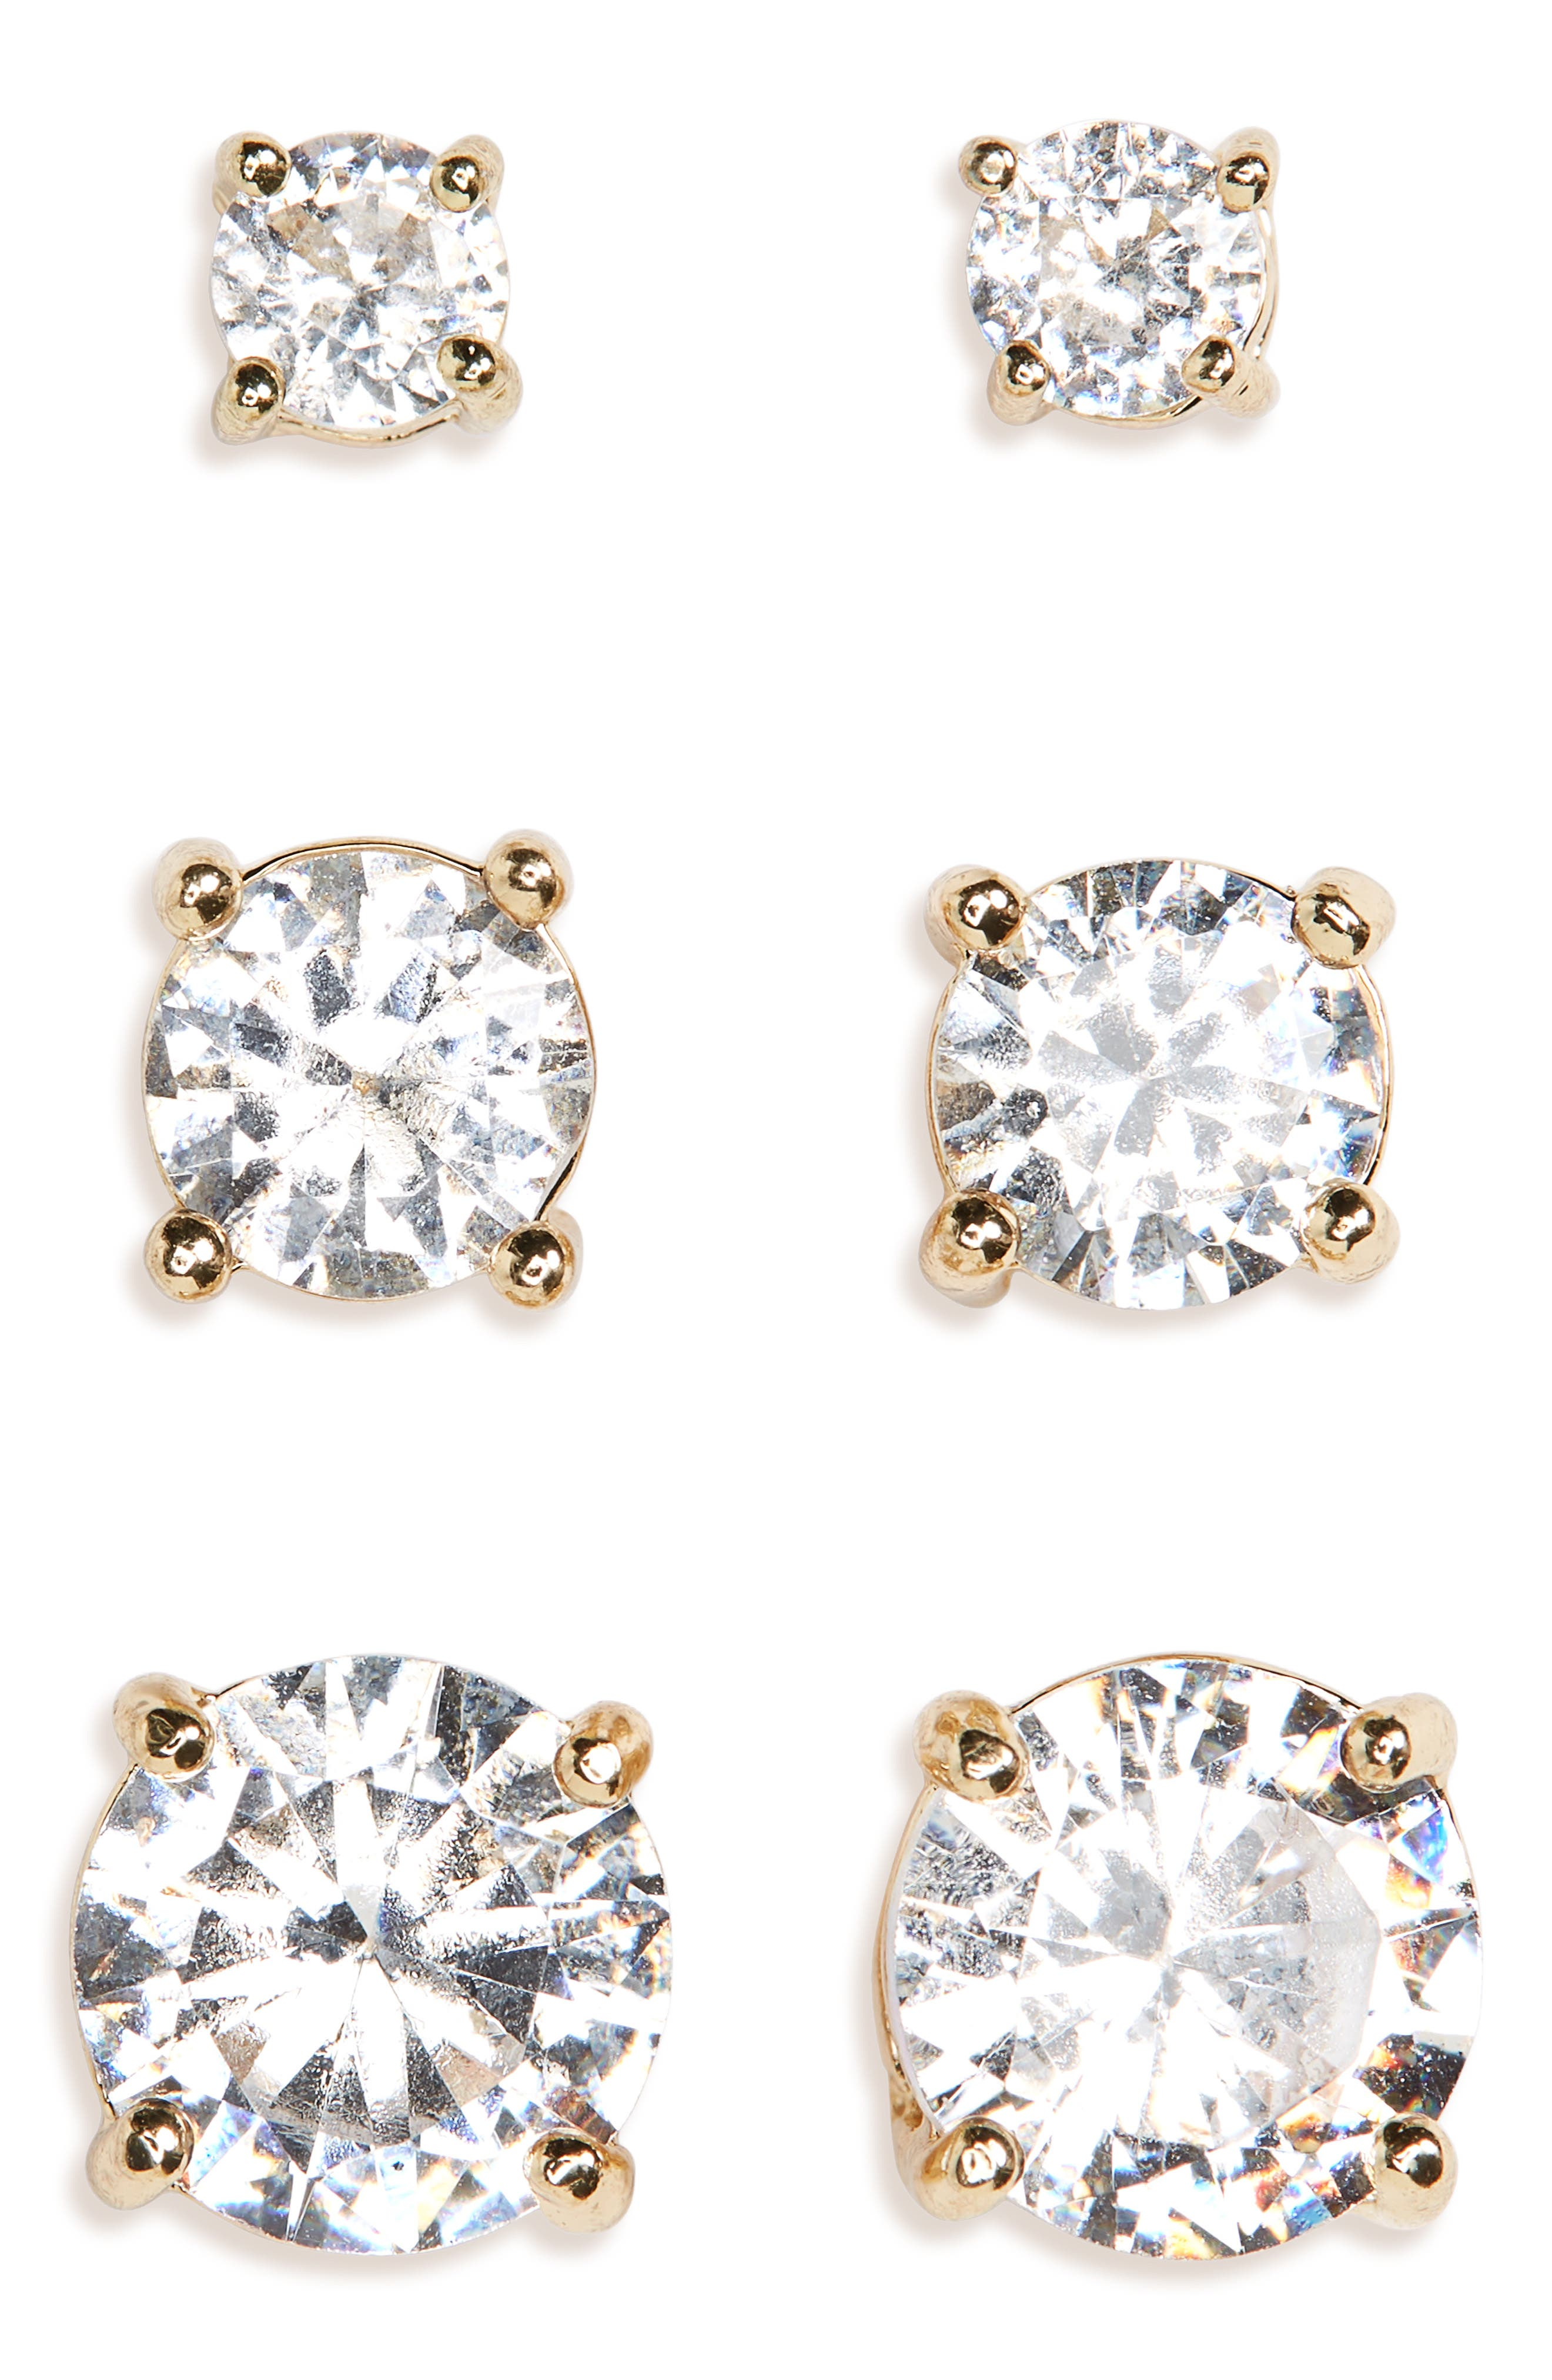 3-Pack Crystal Stud Earrings,                             Main thumbnail 1, color,                             GOLD/ CRYSTAL